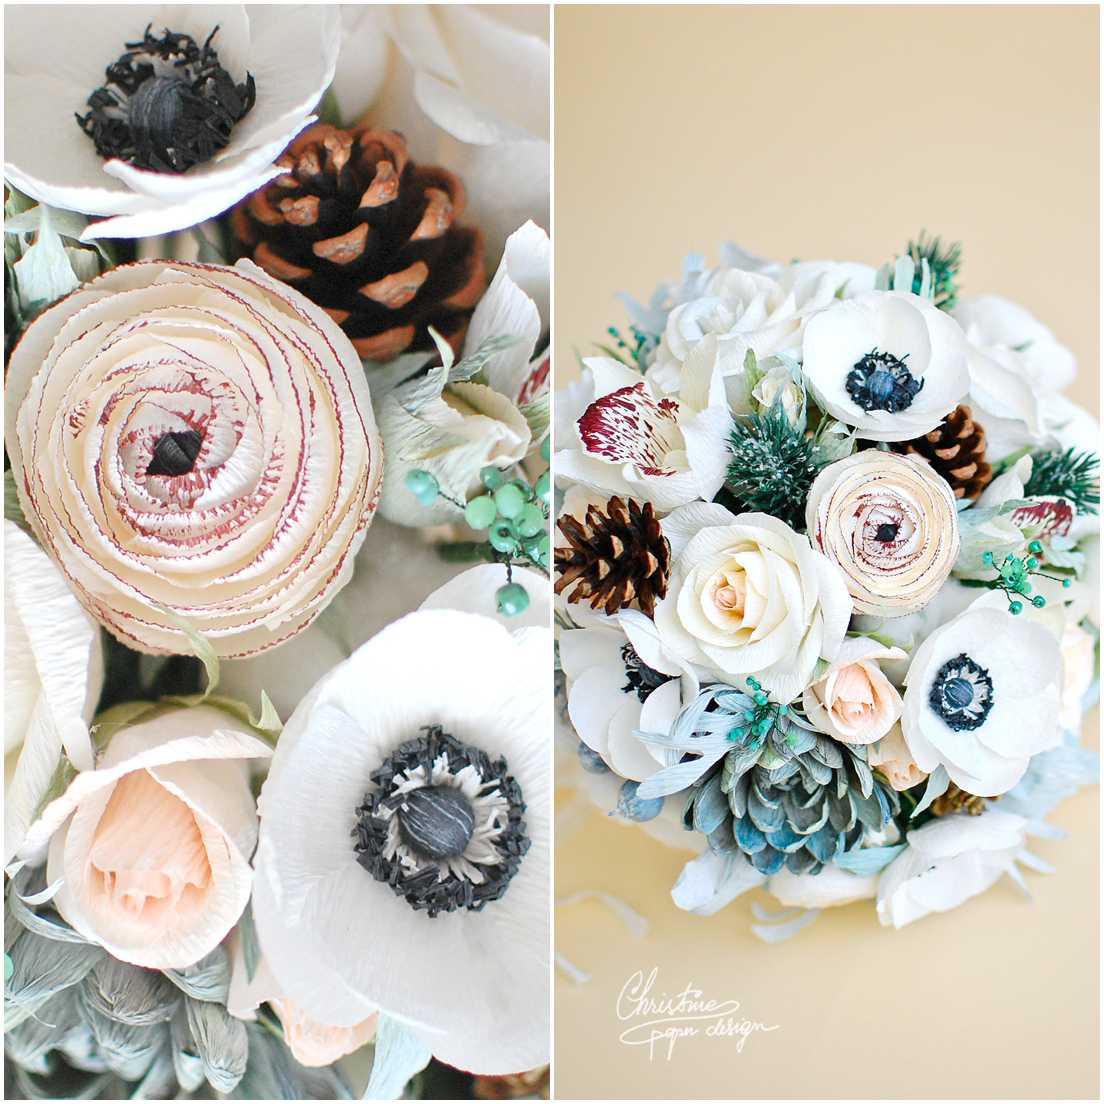 7Christine paper design - alternative winter flowers wedding bouquet